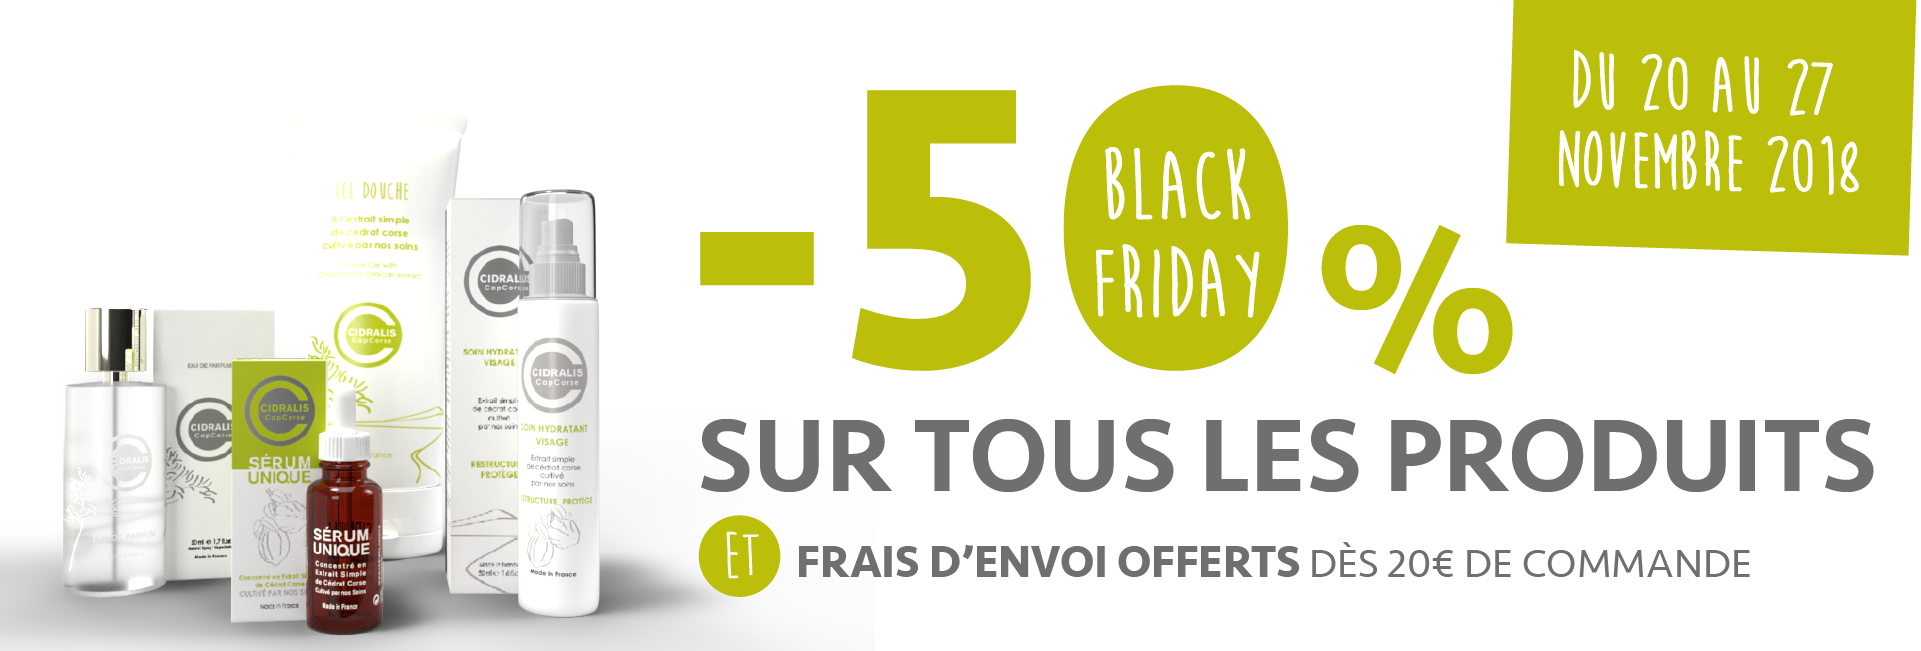 banniere-blackfriday50-cidralis